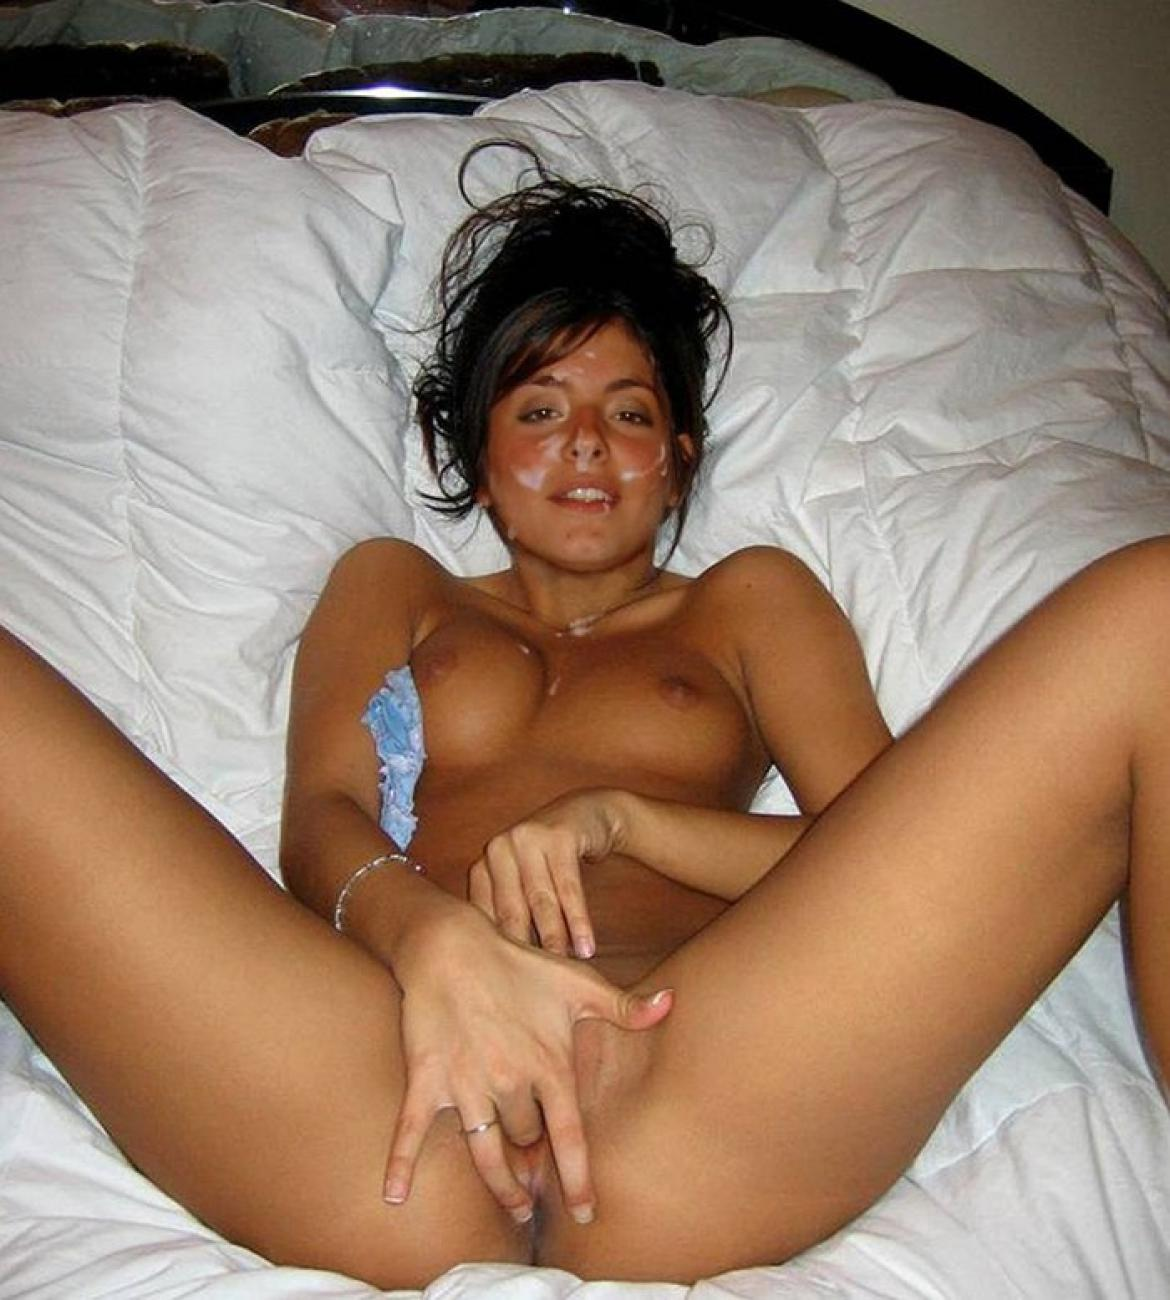 Naked young asian nude girls